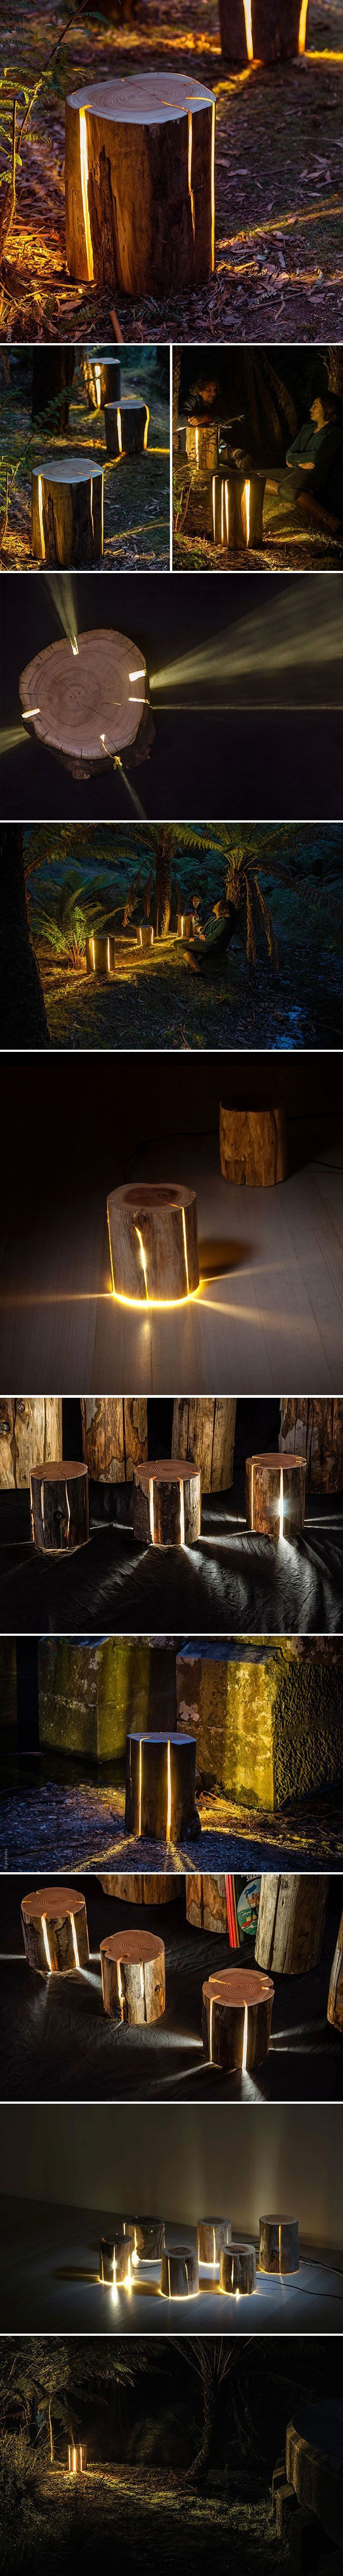 Ultimate guide to landscape and backyard lighting ideas for 2018. We explain every type with photos and then have amazing photo gallery of the best landscape lights. Find and save ideas about Backyard lighting on here. See more ideas about Diy backyard ideas, Yard ideas and Outdoor patio lighting. #GardenIdeas #LanscapeIdeas #PatioIdeas #BackyardIdeas